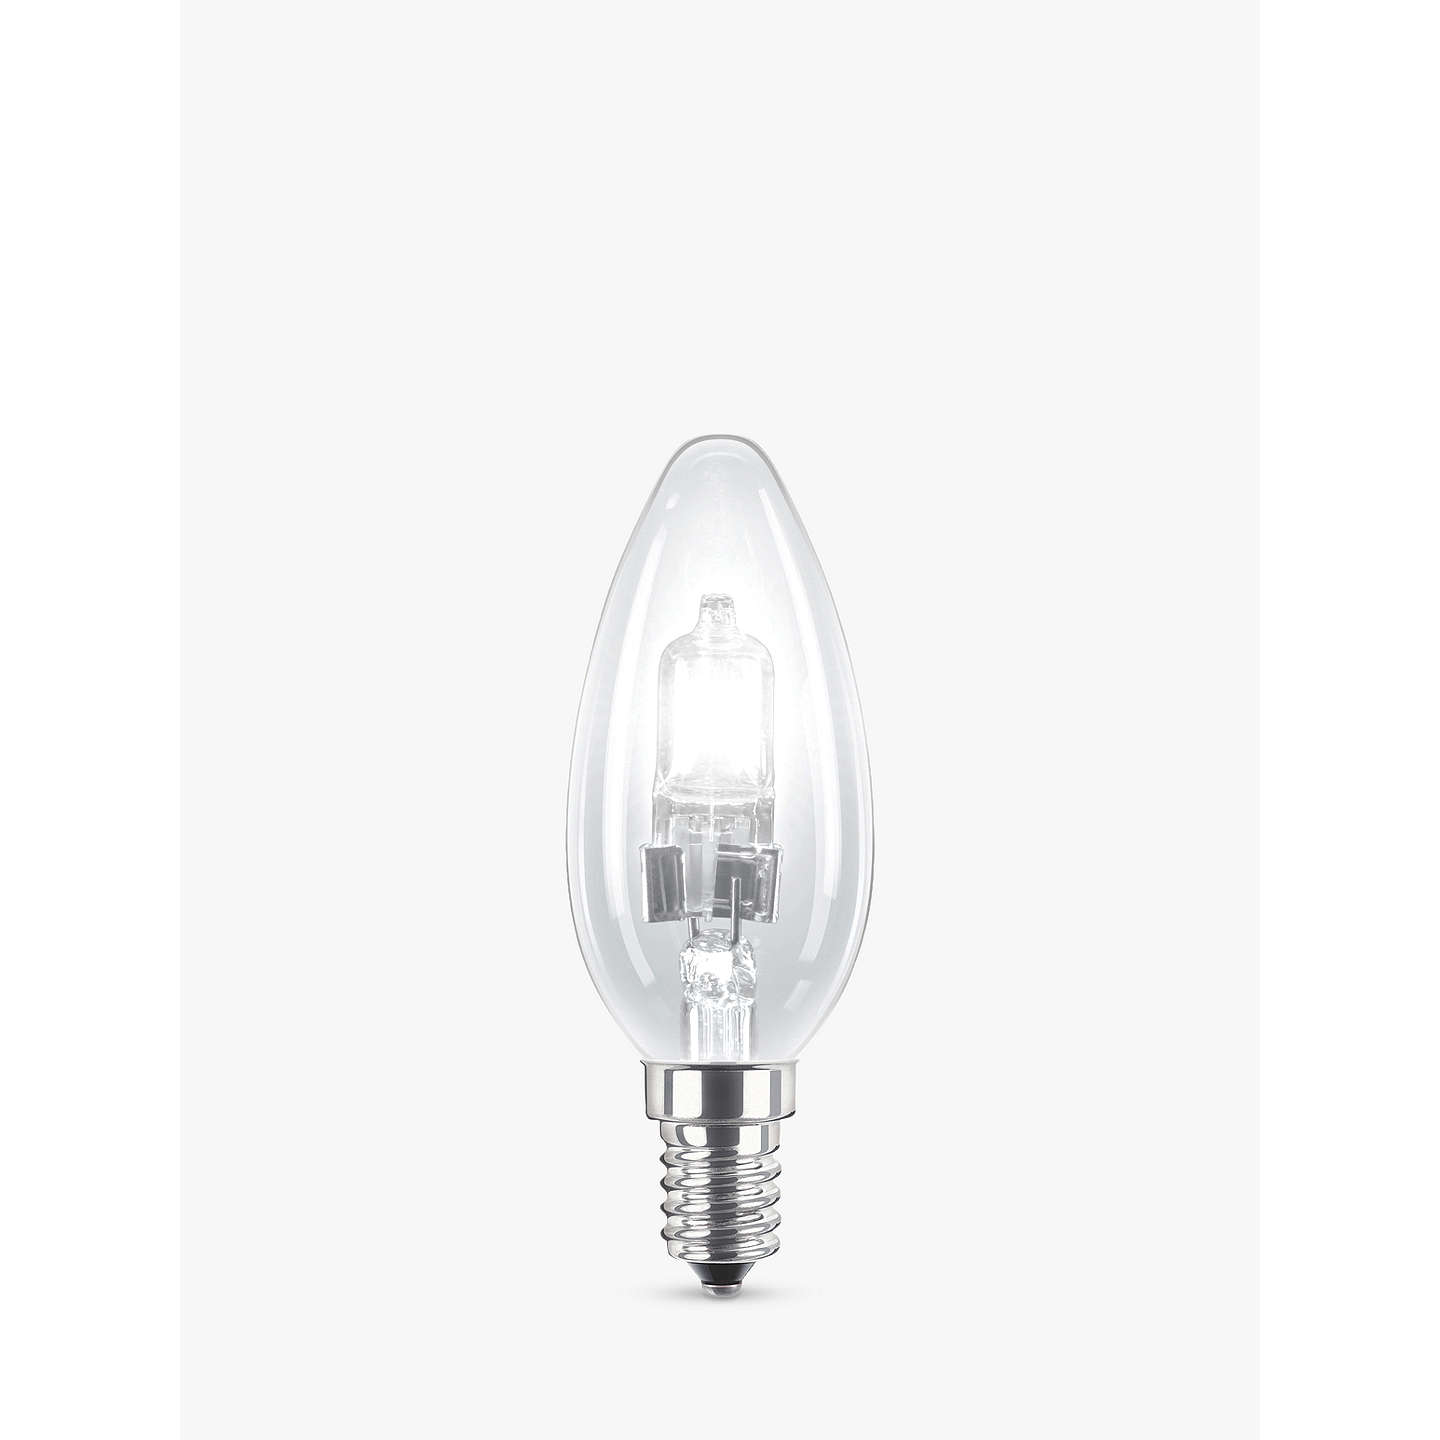 BuyPhilips 42W SES Halogen Classic Candle Bulb, Clear Online at johnlewis.com